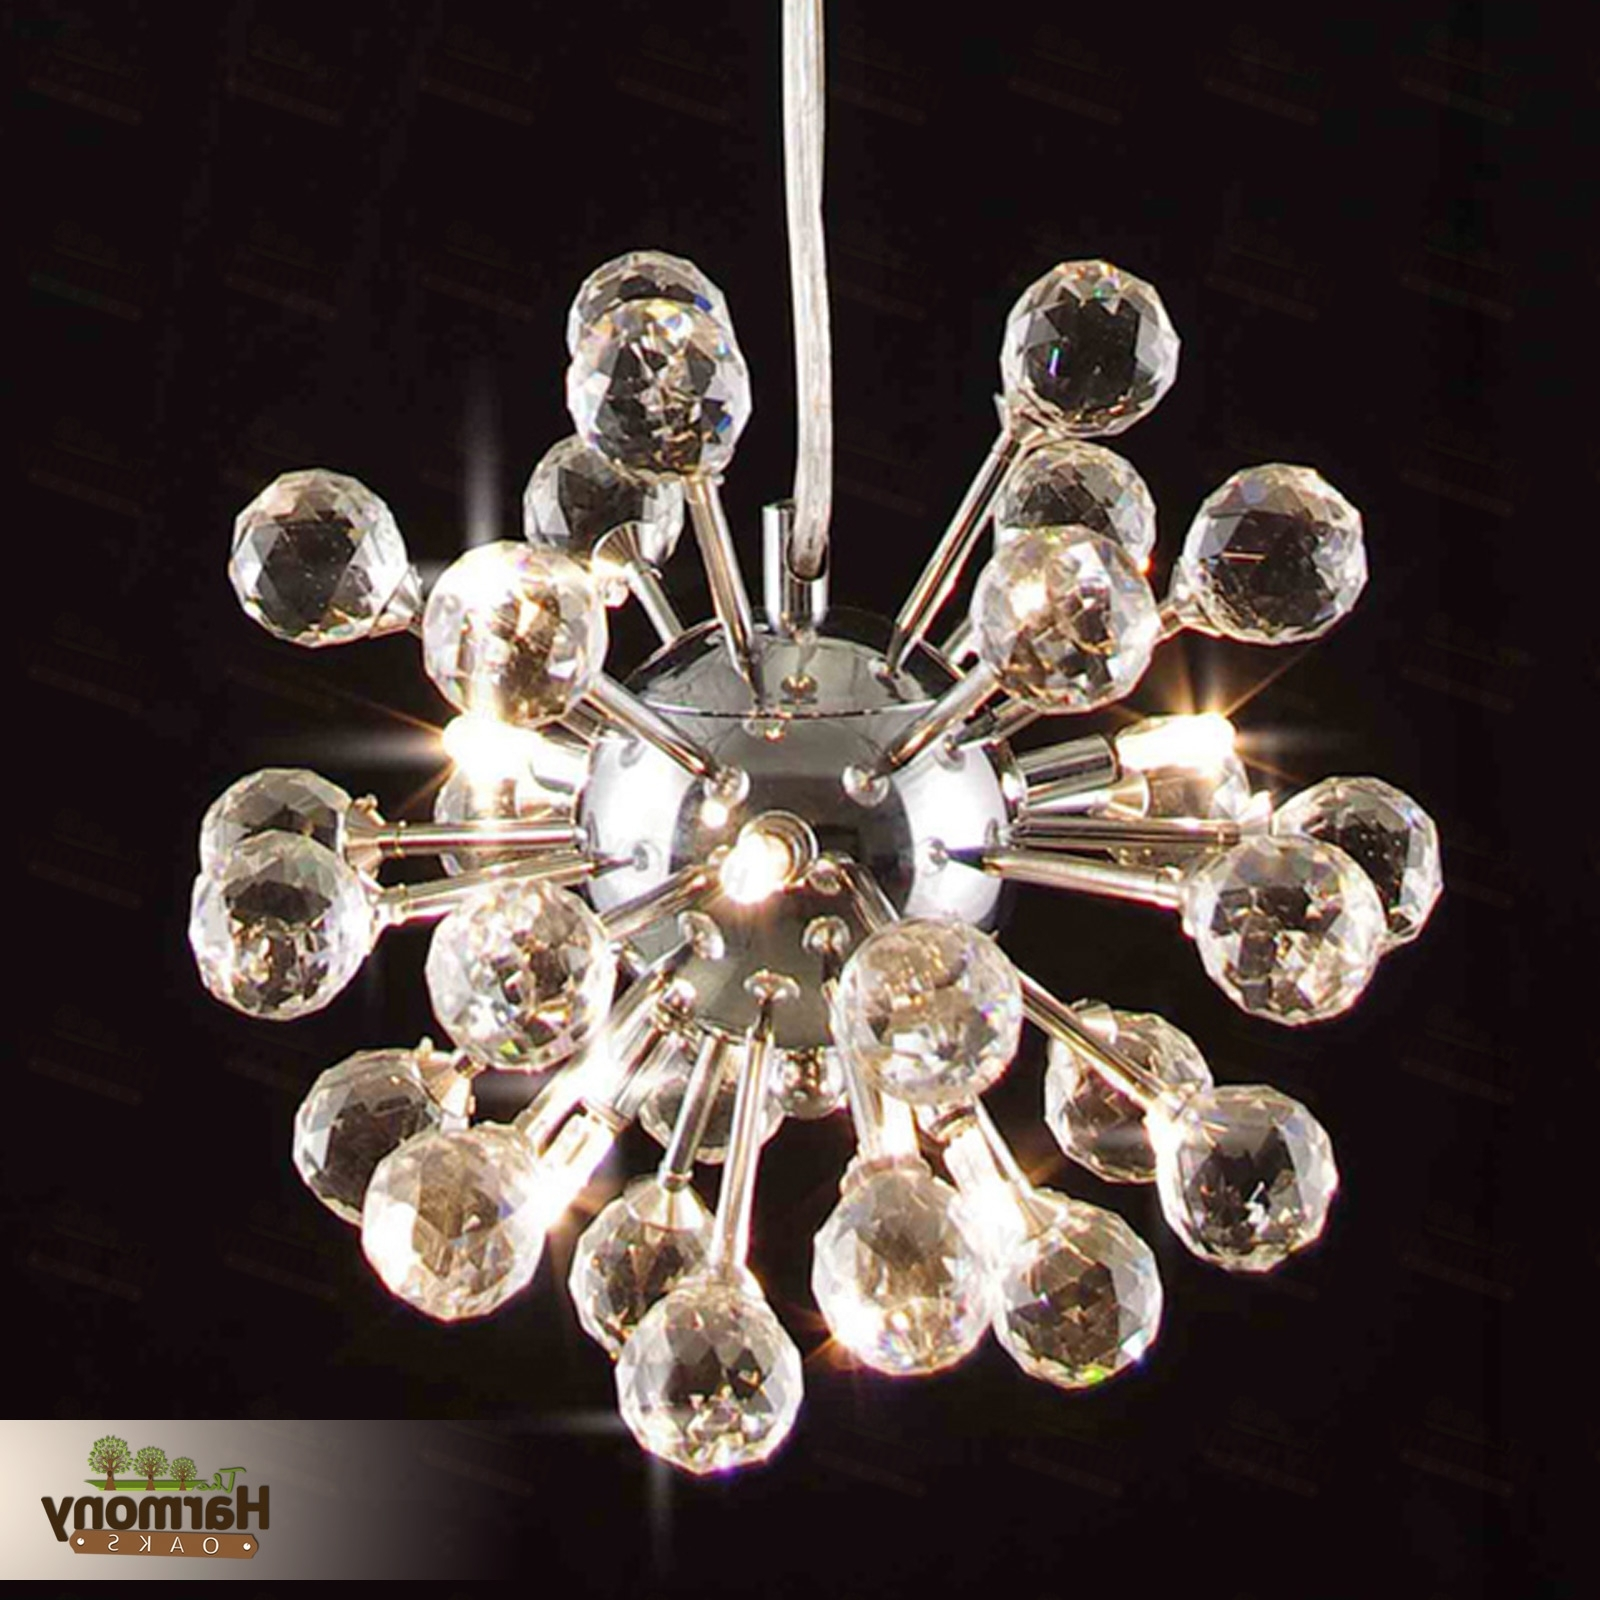 Fashionable Chandelier Crystal Light Vintage Ceiling Art Glass Lighting 6 Modern For Modern Glass Chandeliers (View 9 of 20)